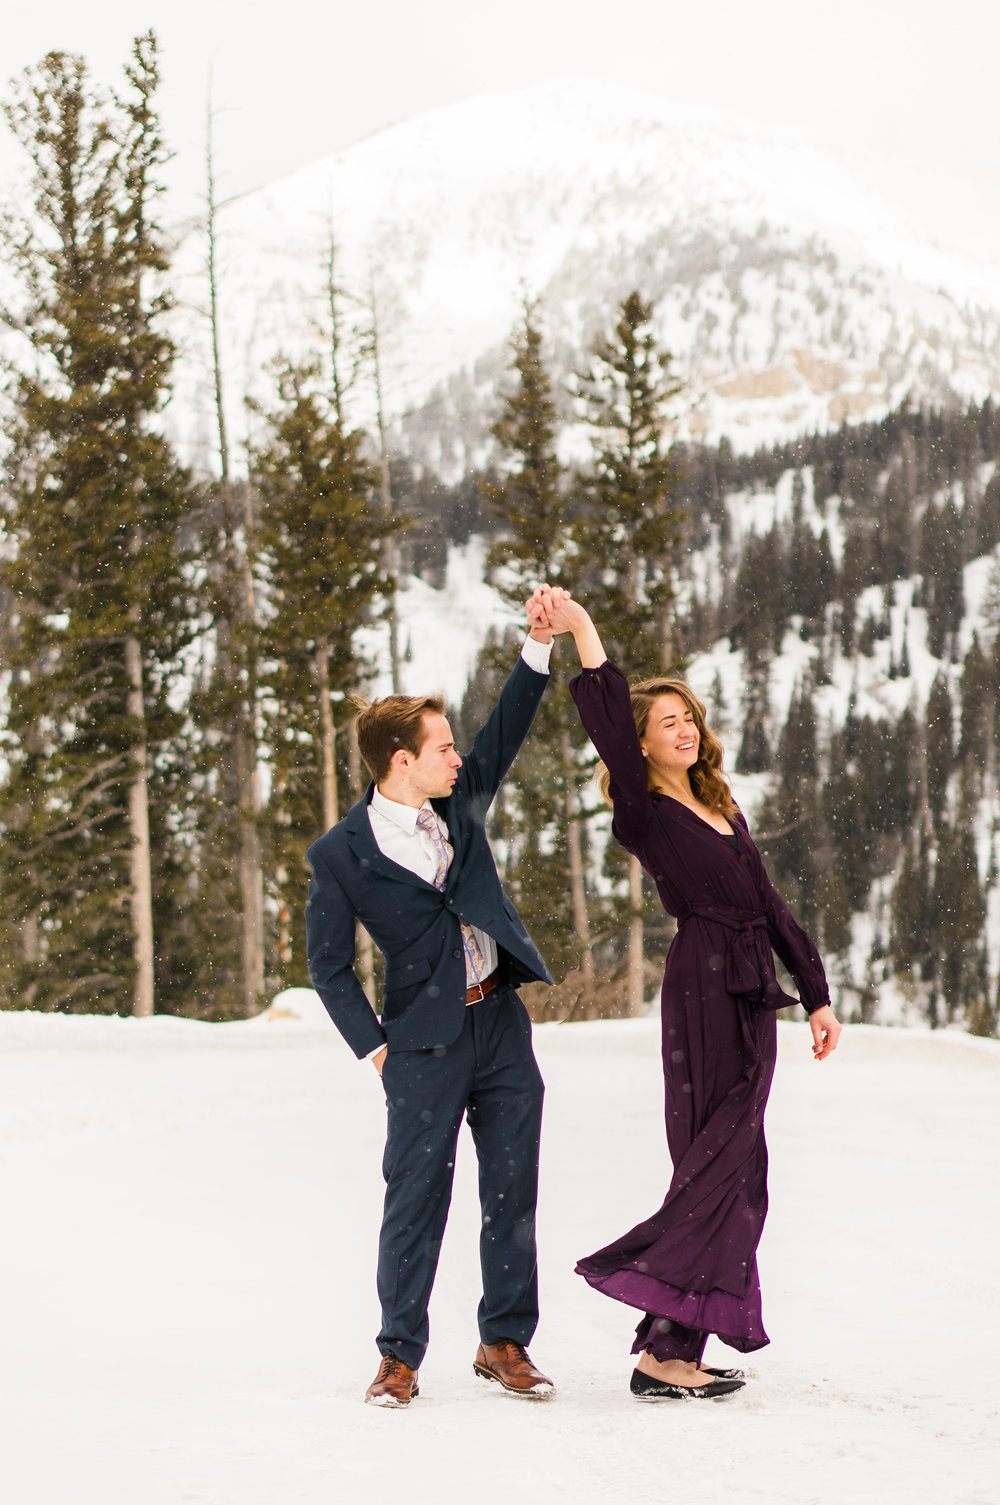 The purple and navy allow my husband and I to stand out against the snowy, white landscape